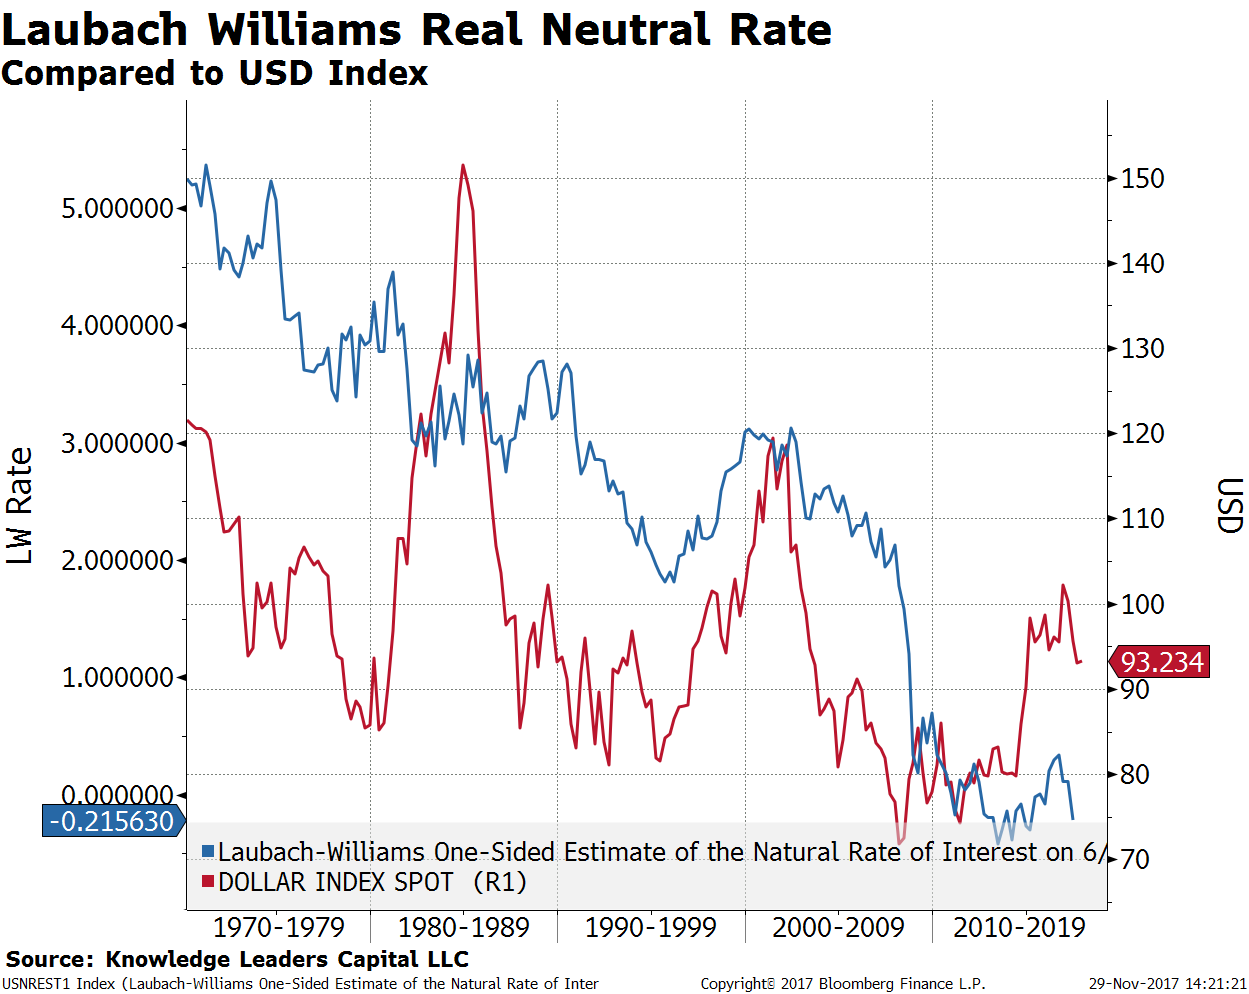 Cash is an asset class again knowledge leaders capital blog this relationship suggests the us dollar bull run has come to a conclusion as the lw real neutral rate has rolled over again in the chart below nvjuhfo Choice Image